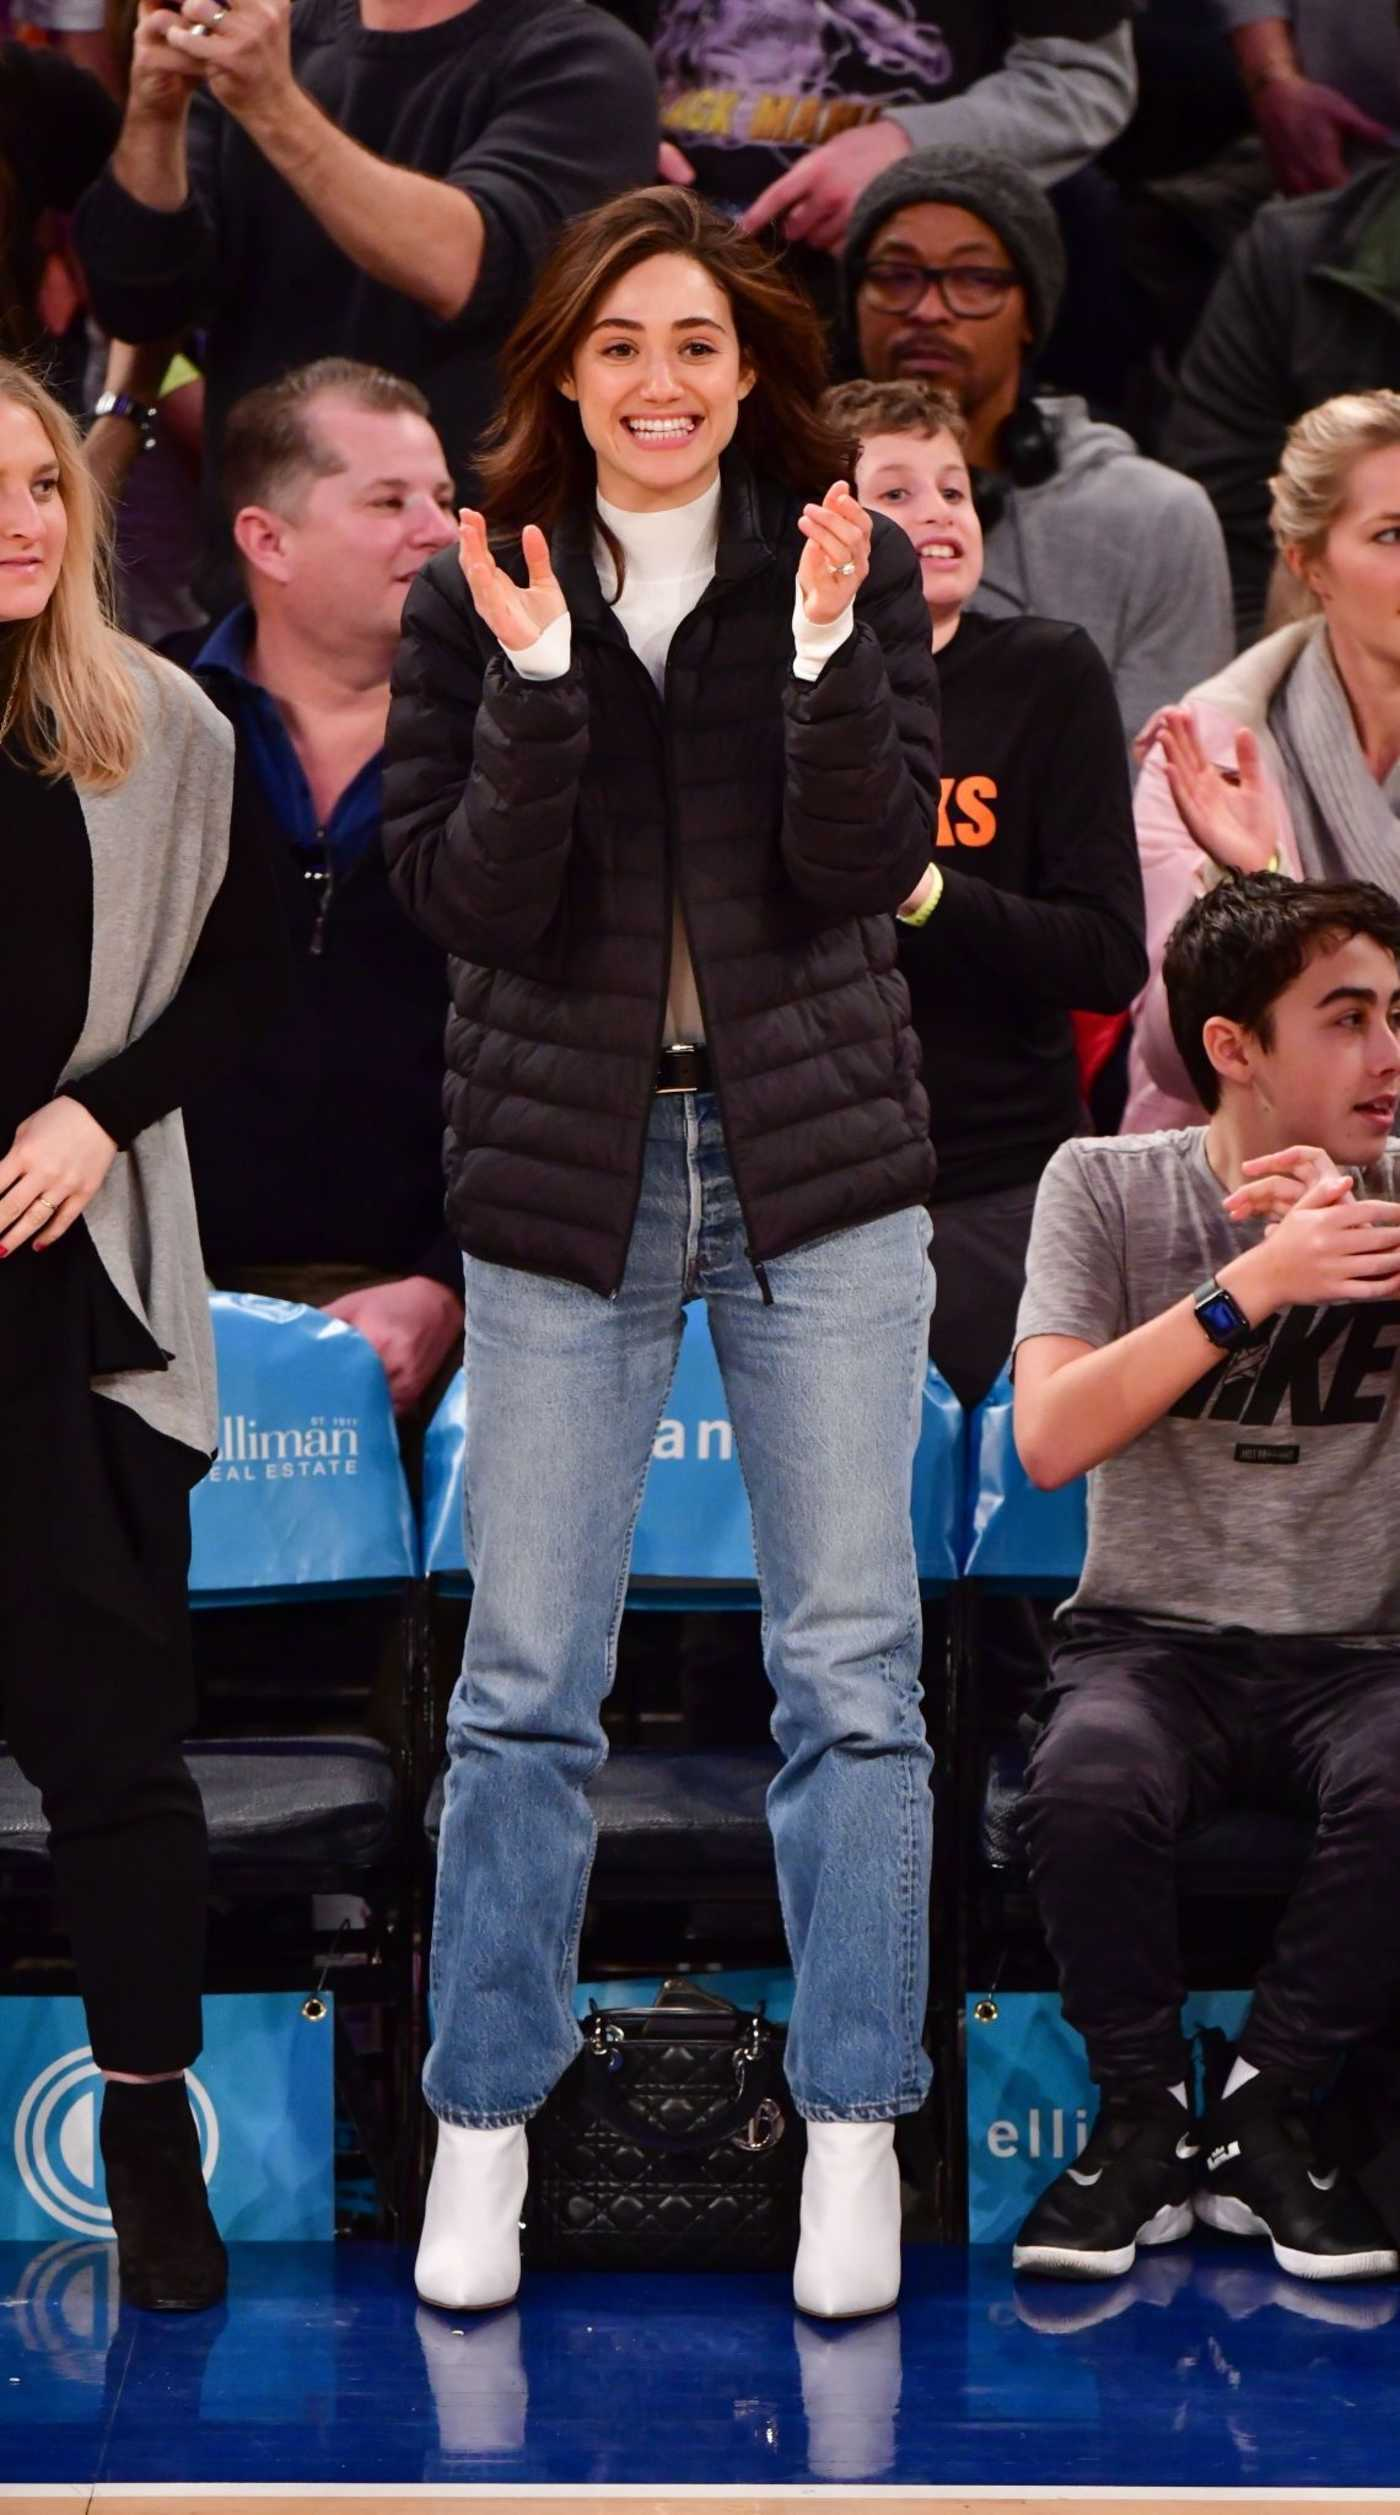 Emmy Rossum Attends the Game Between the Los Angeles Lakers and New York Knicks in NYC 03/17/2019